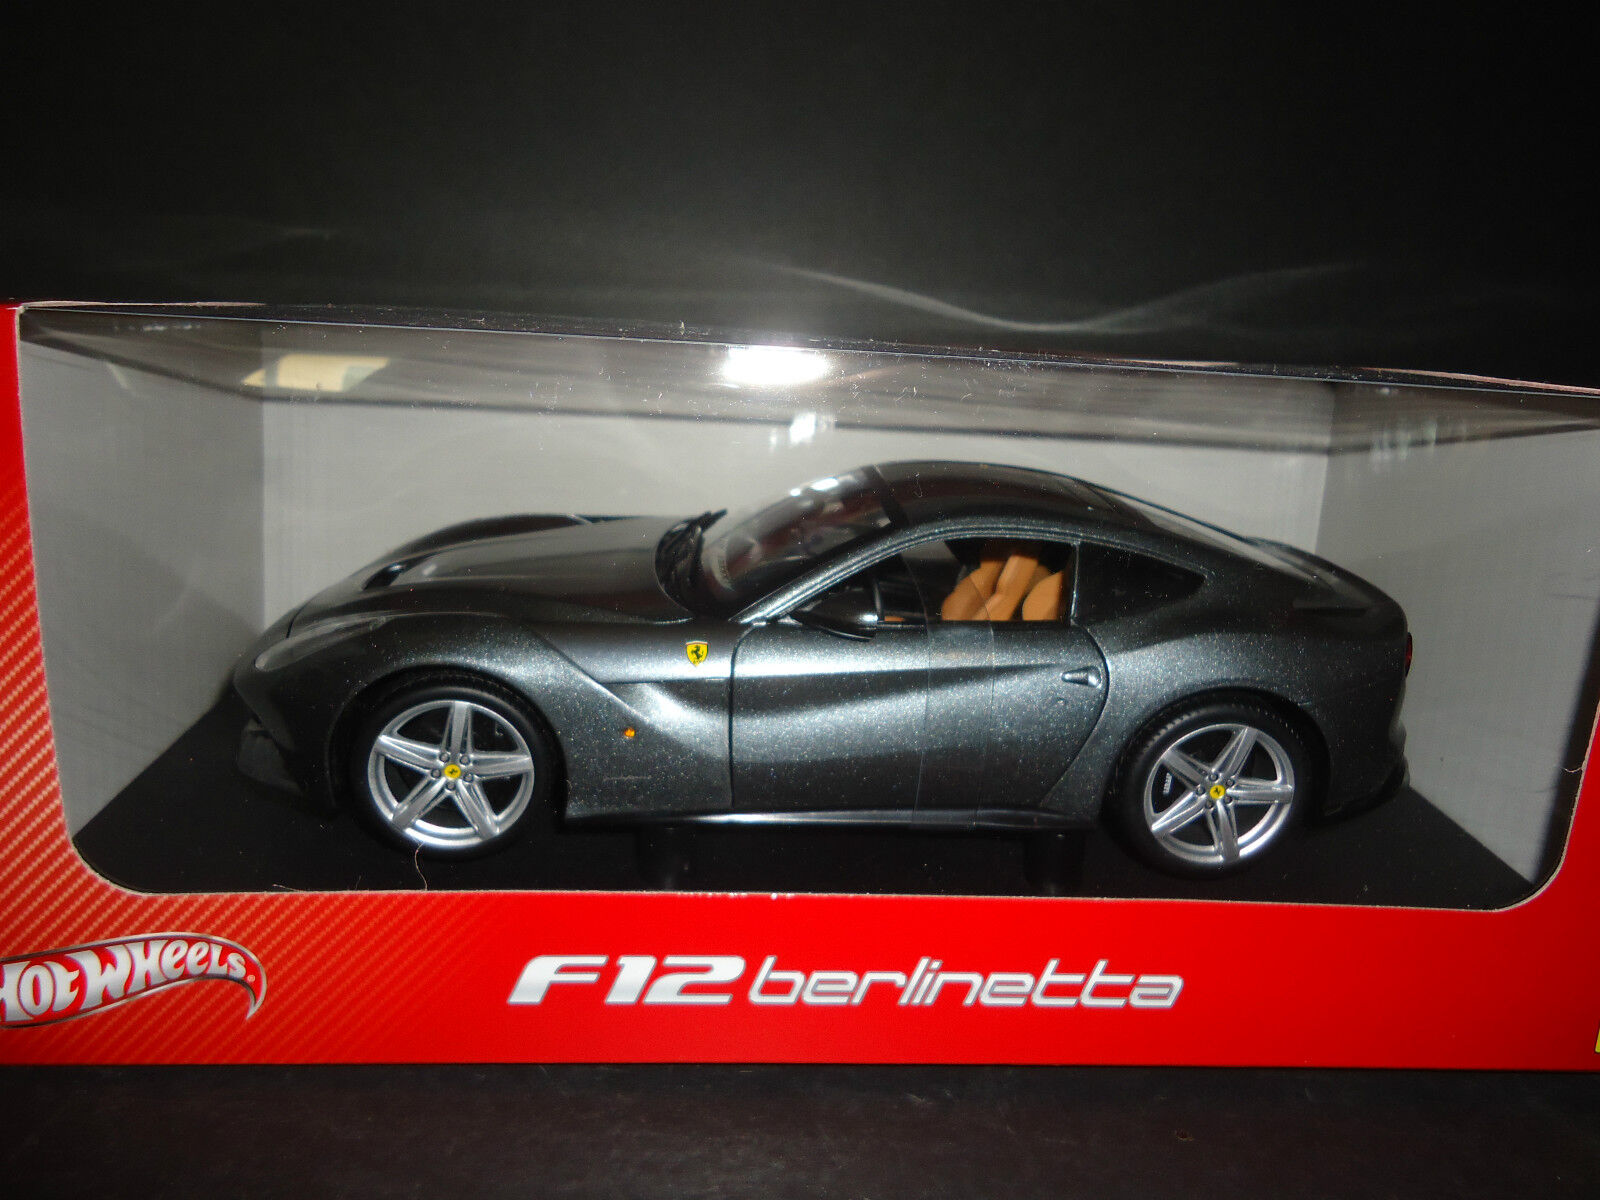 Hot Wheels Ferrari F12 Berlinetta Grey BCJ74 1 18